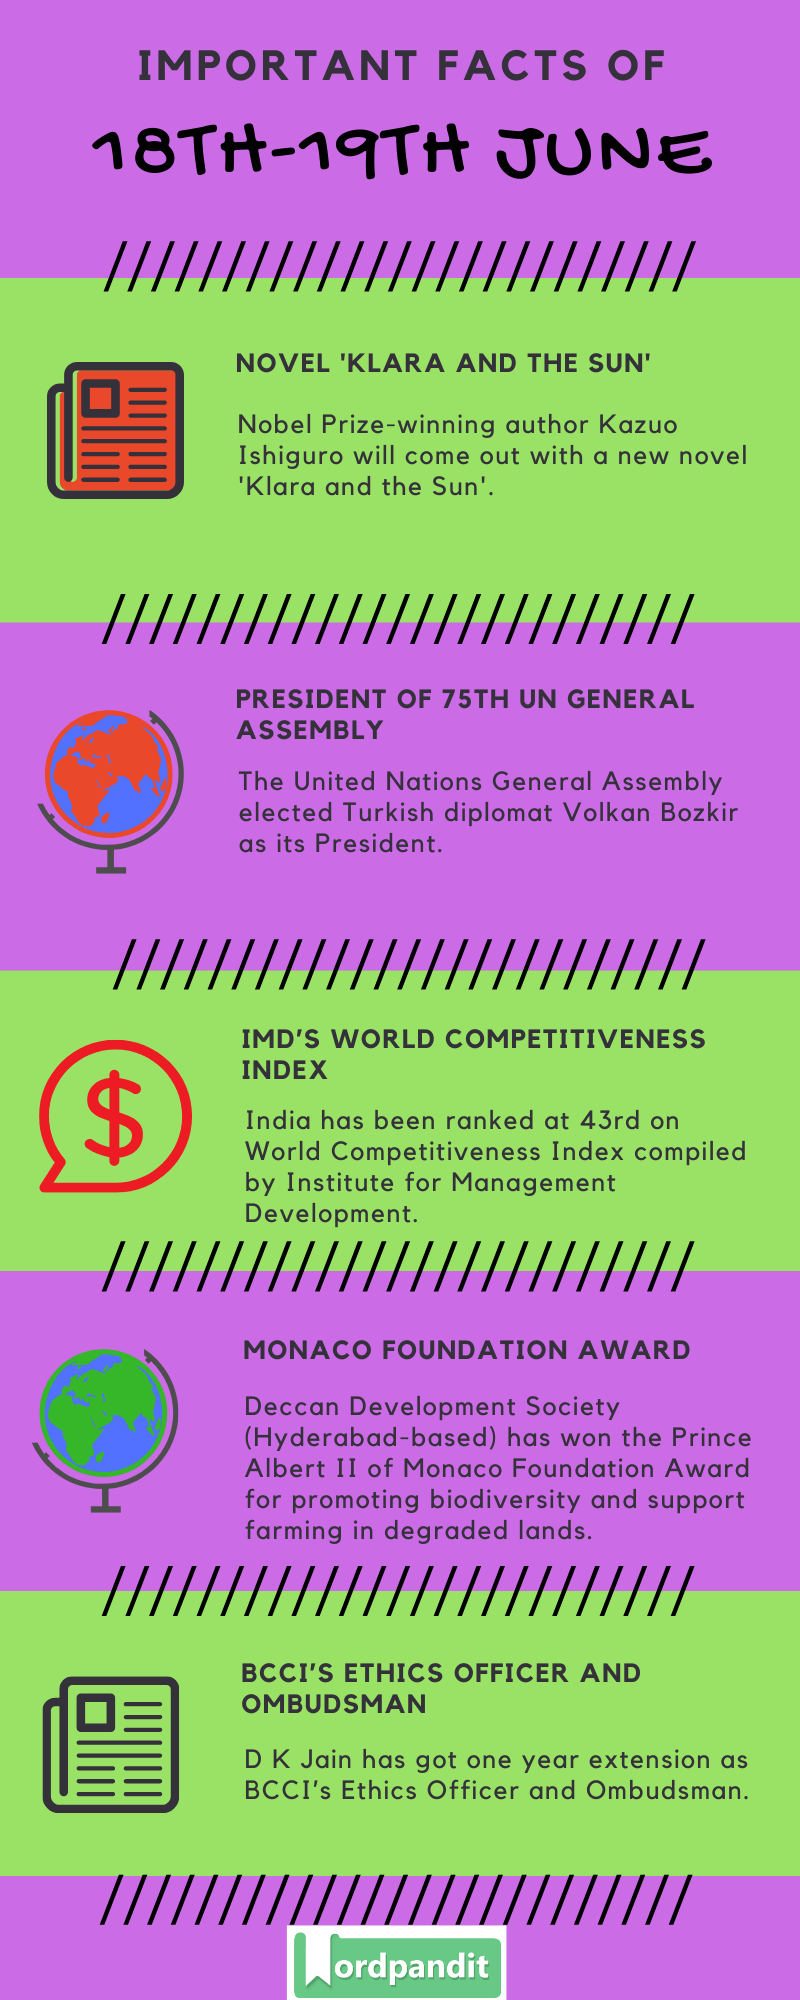 Daily-Current-Affairs-18a-19a-June-2020-Current-Affairs-Quiz-18a-19a-June-2020-Current-Affairs-Infographic